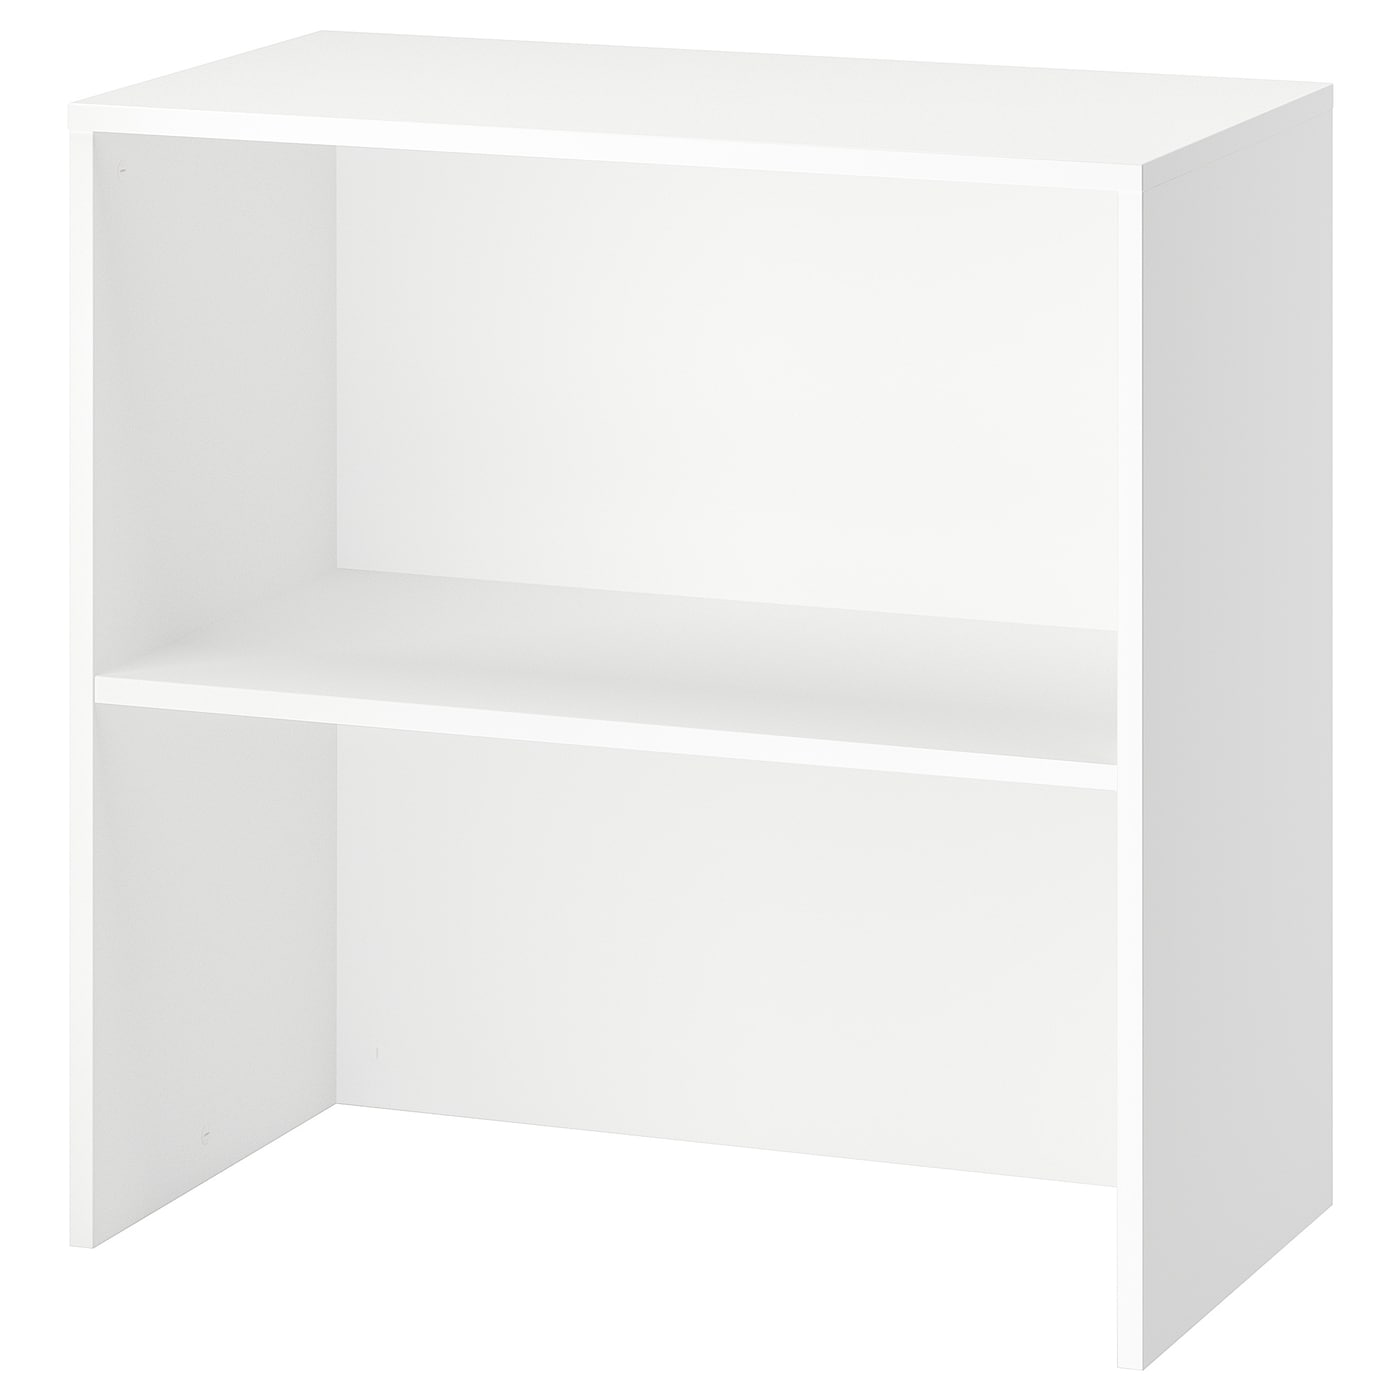 IKEA GALANT add-on unit 10 year guarantee. Read about the terms in the guarantee brochure.